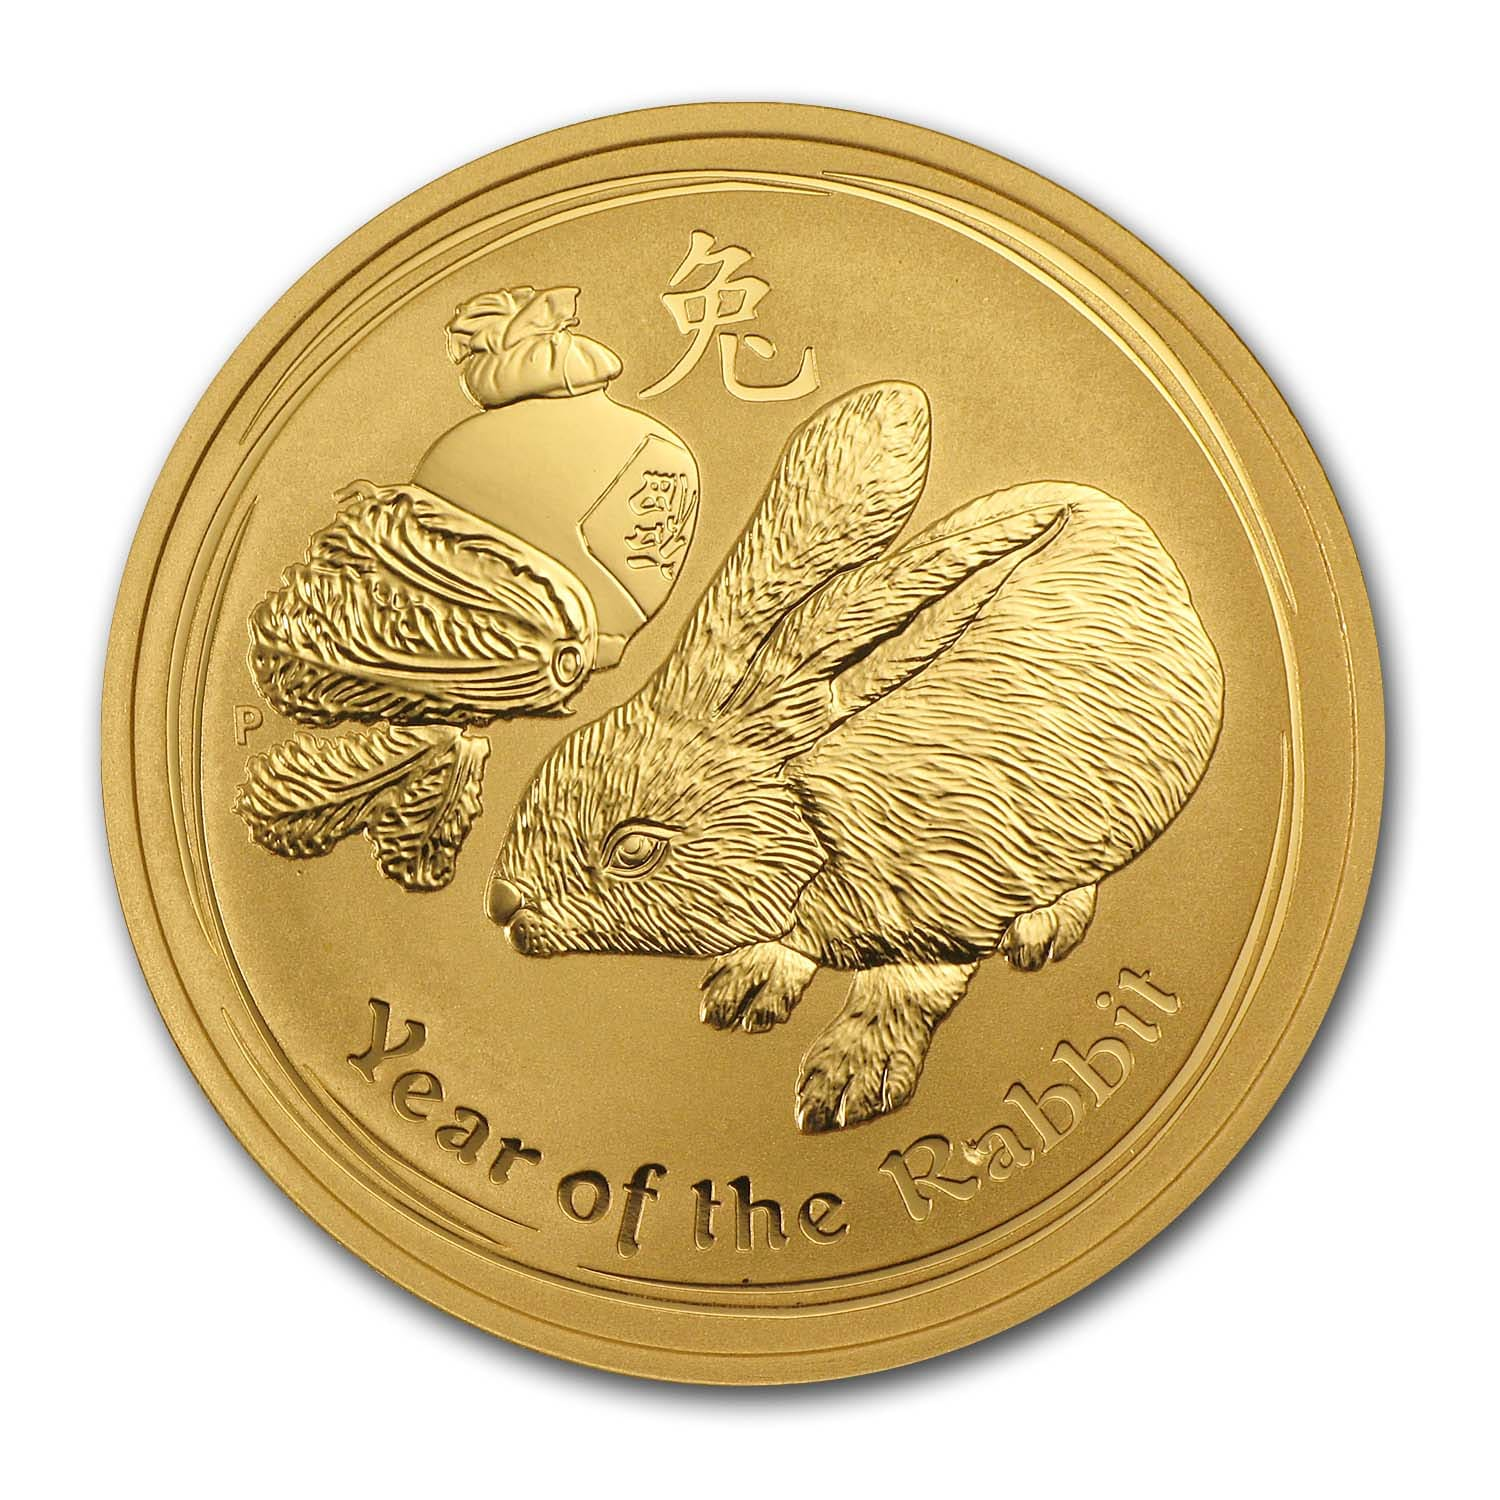 2011 1 oz Gold Lunar Year of the Rabbit (Series II)